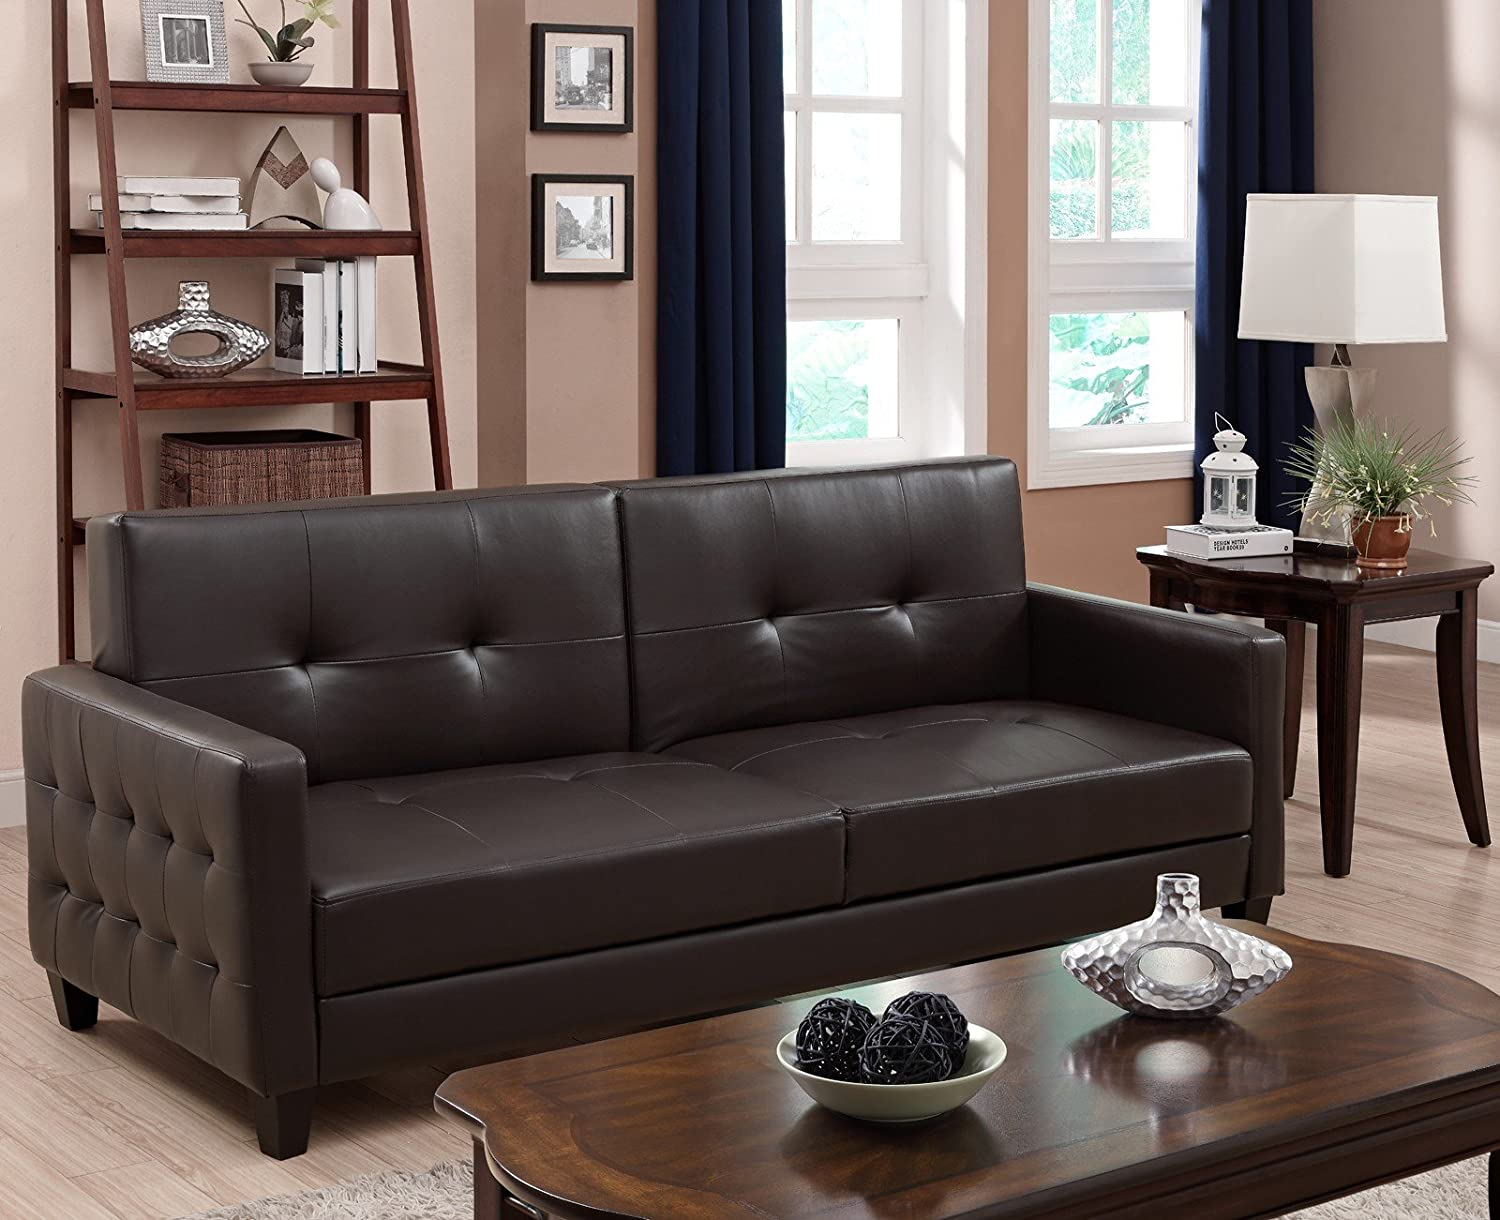 Amazoncom DHP Rome Futon Brown Kitchen Dining